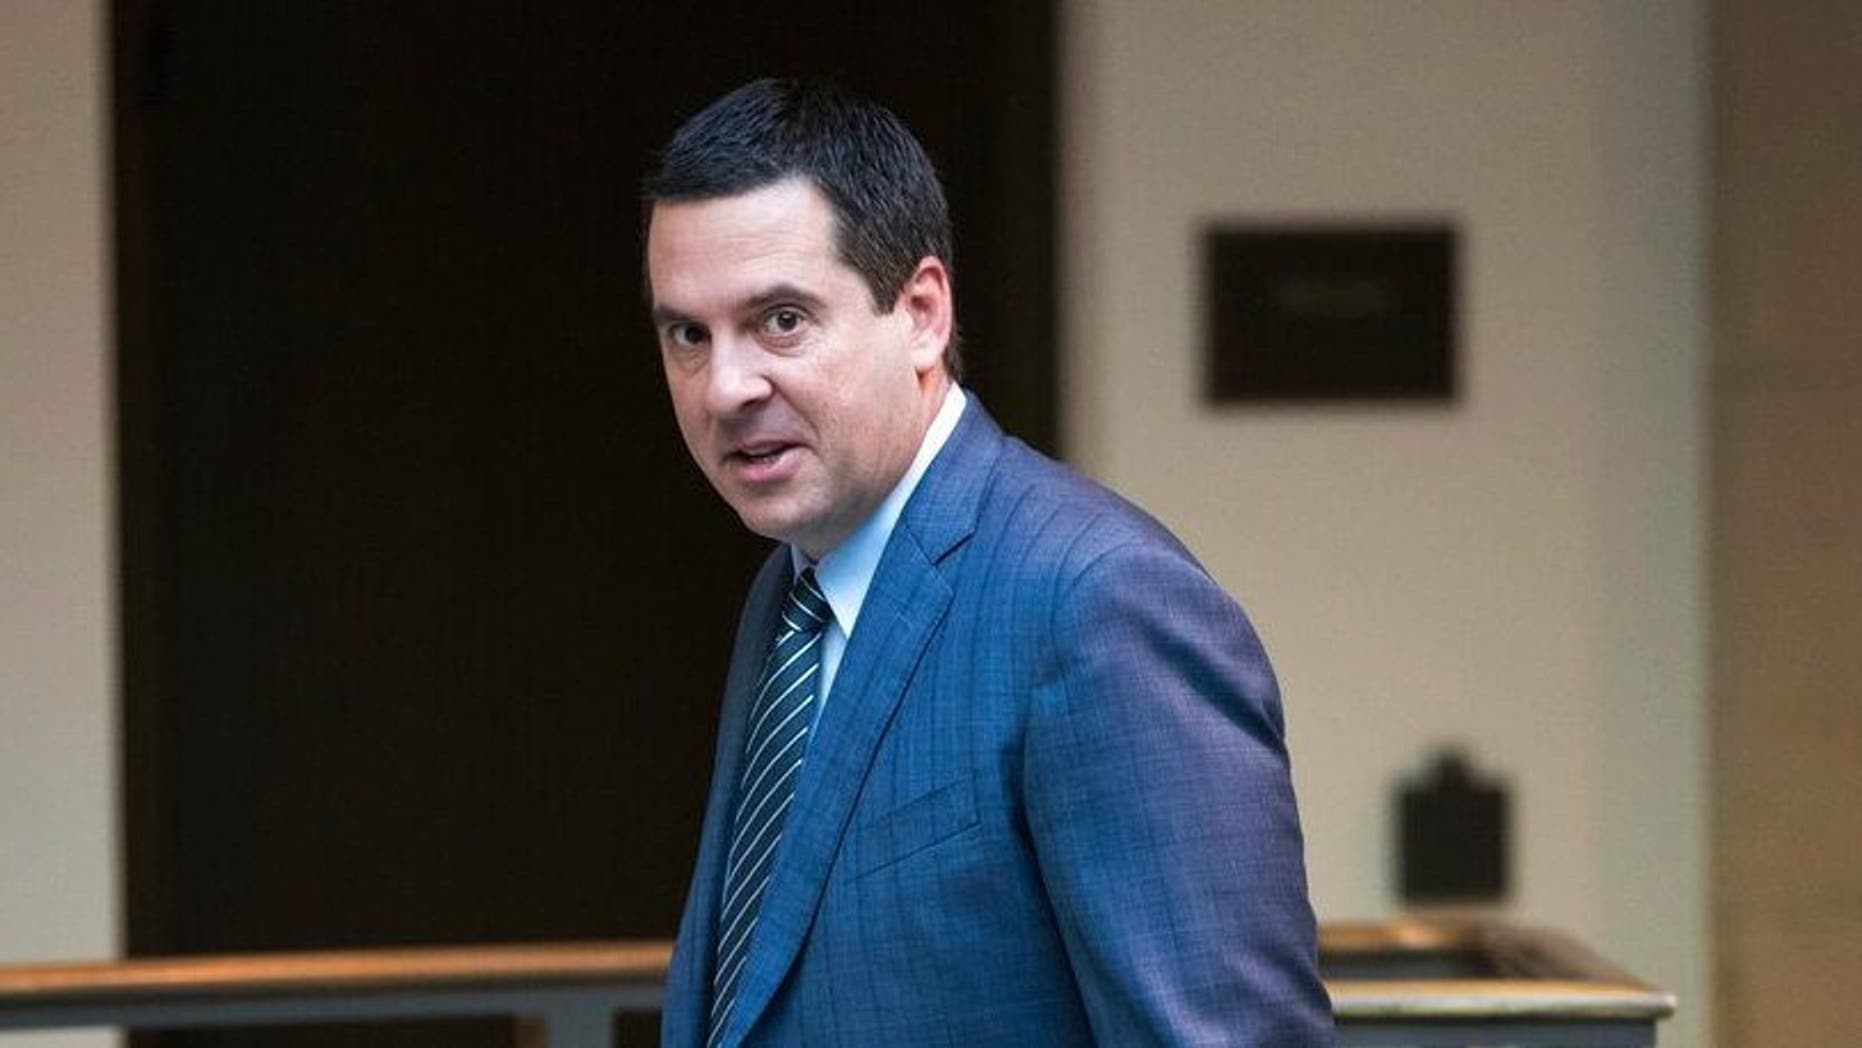 """FILE - In this Feb. 27, 2018 file photo, House Intelligence Committee Chairman Devin Nunes, R-Calif., a close ally of President Donald Trump, arrives at the Capitol in Washington. Nunes is suing Twitter and several of its users for more than $250 million, accusing them of defamation and negligence. The suit filed Monday, March 18, 2019, in Virginia accuses Twitter of """"knowingly hosting and monetizing content that is clearly abusive, hateful and defamatory."""" (AP Photo/J. Scott Applewhite, File)"""